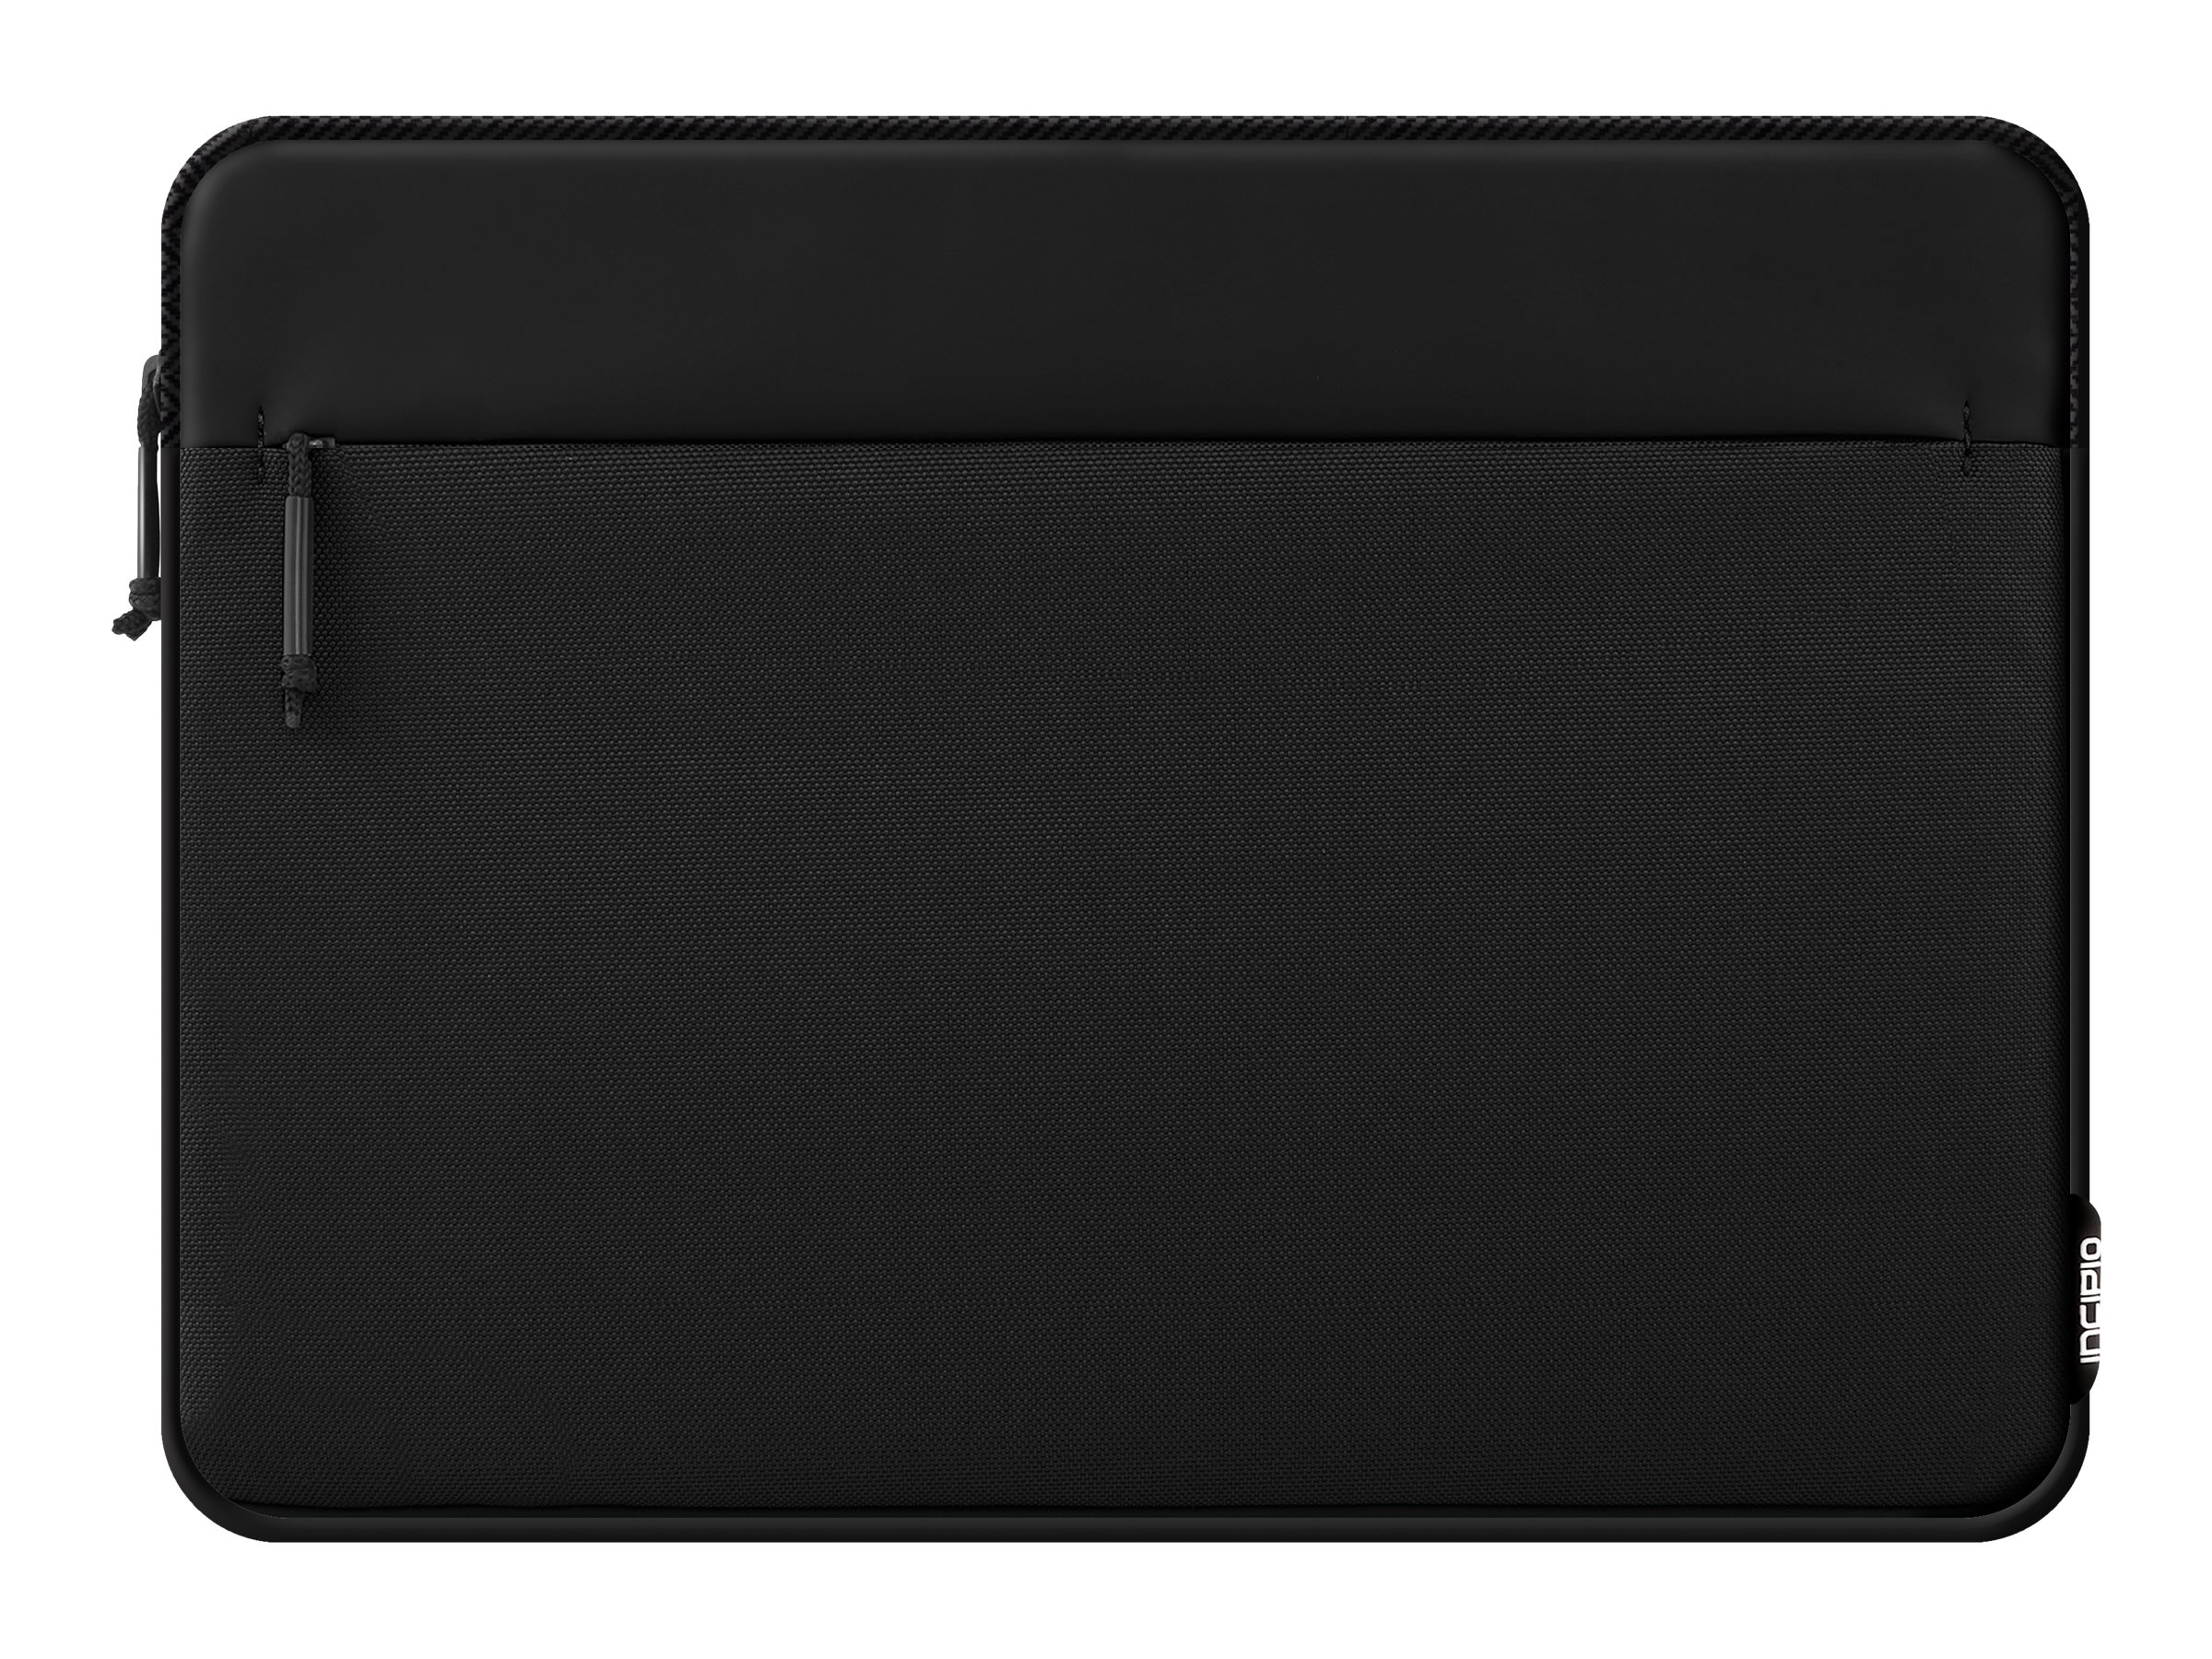 Incipio Truman Sleeve for iPad Pro 9.7, Black, IPD-307-BLK